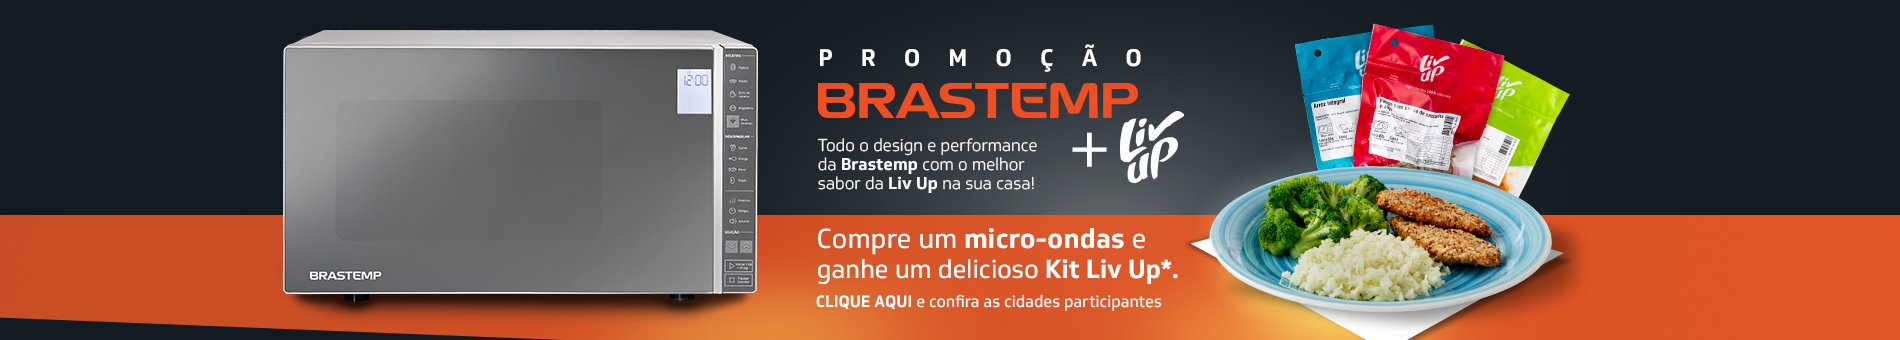 Promoção Interna - 3281 - livup_promo-liv-up_1082019_home2 - promo-liv-up - 2